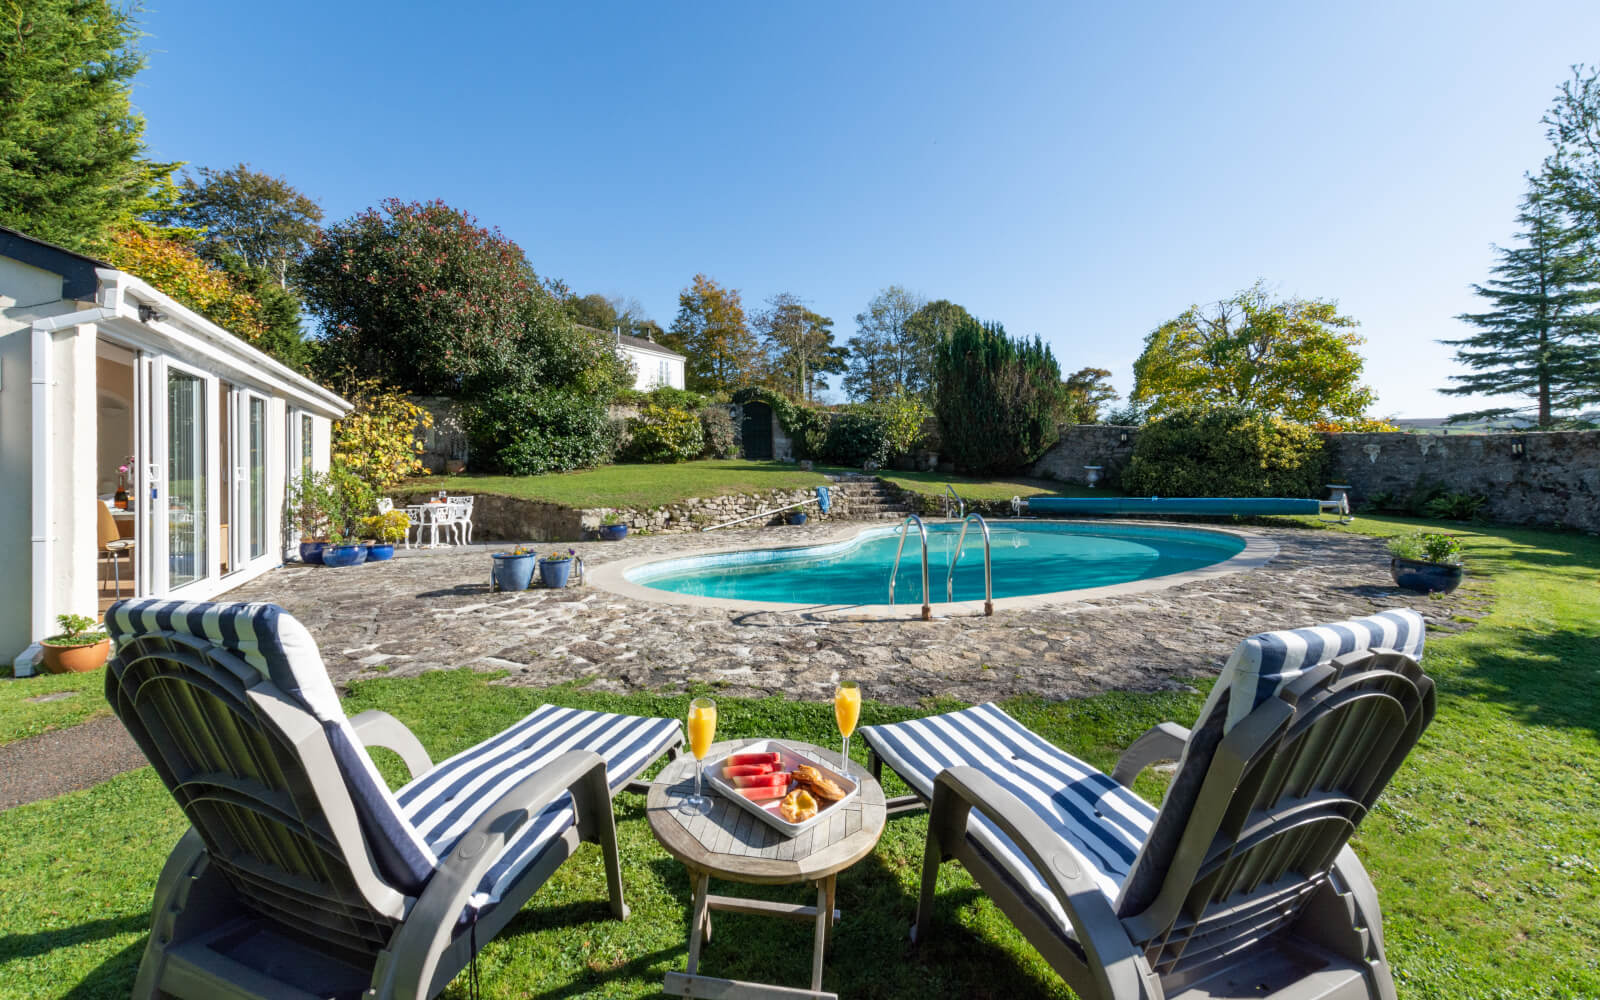 Holiday Cottages With Swimming Pools In West Wales To Rent - Save up to 60%